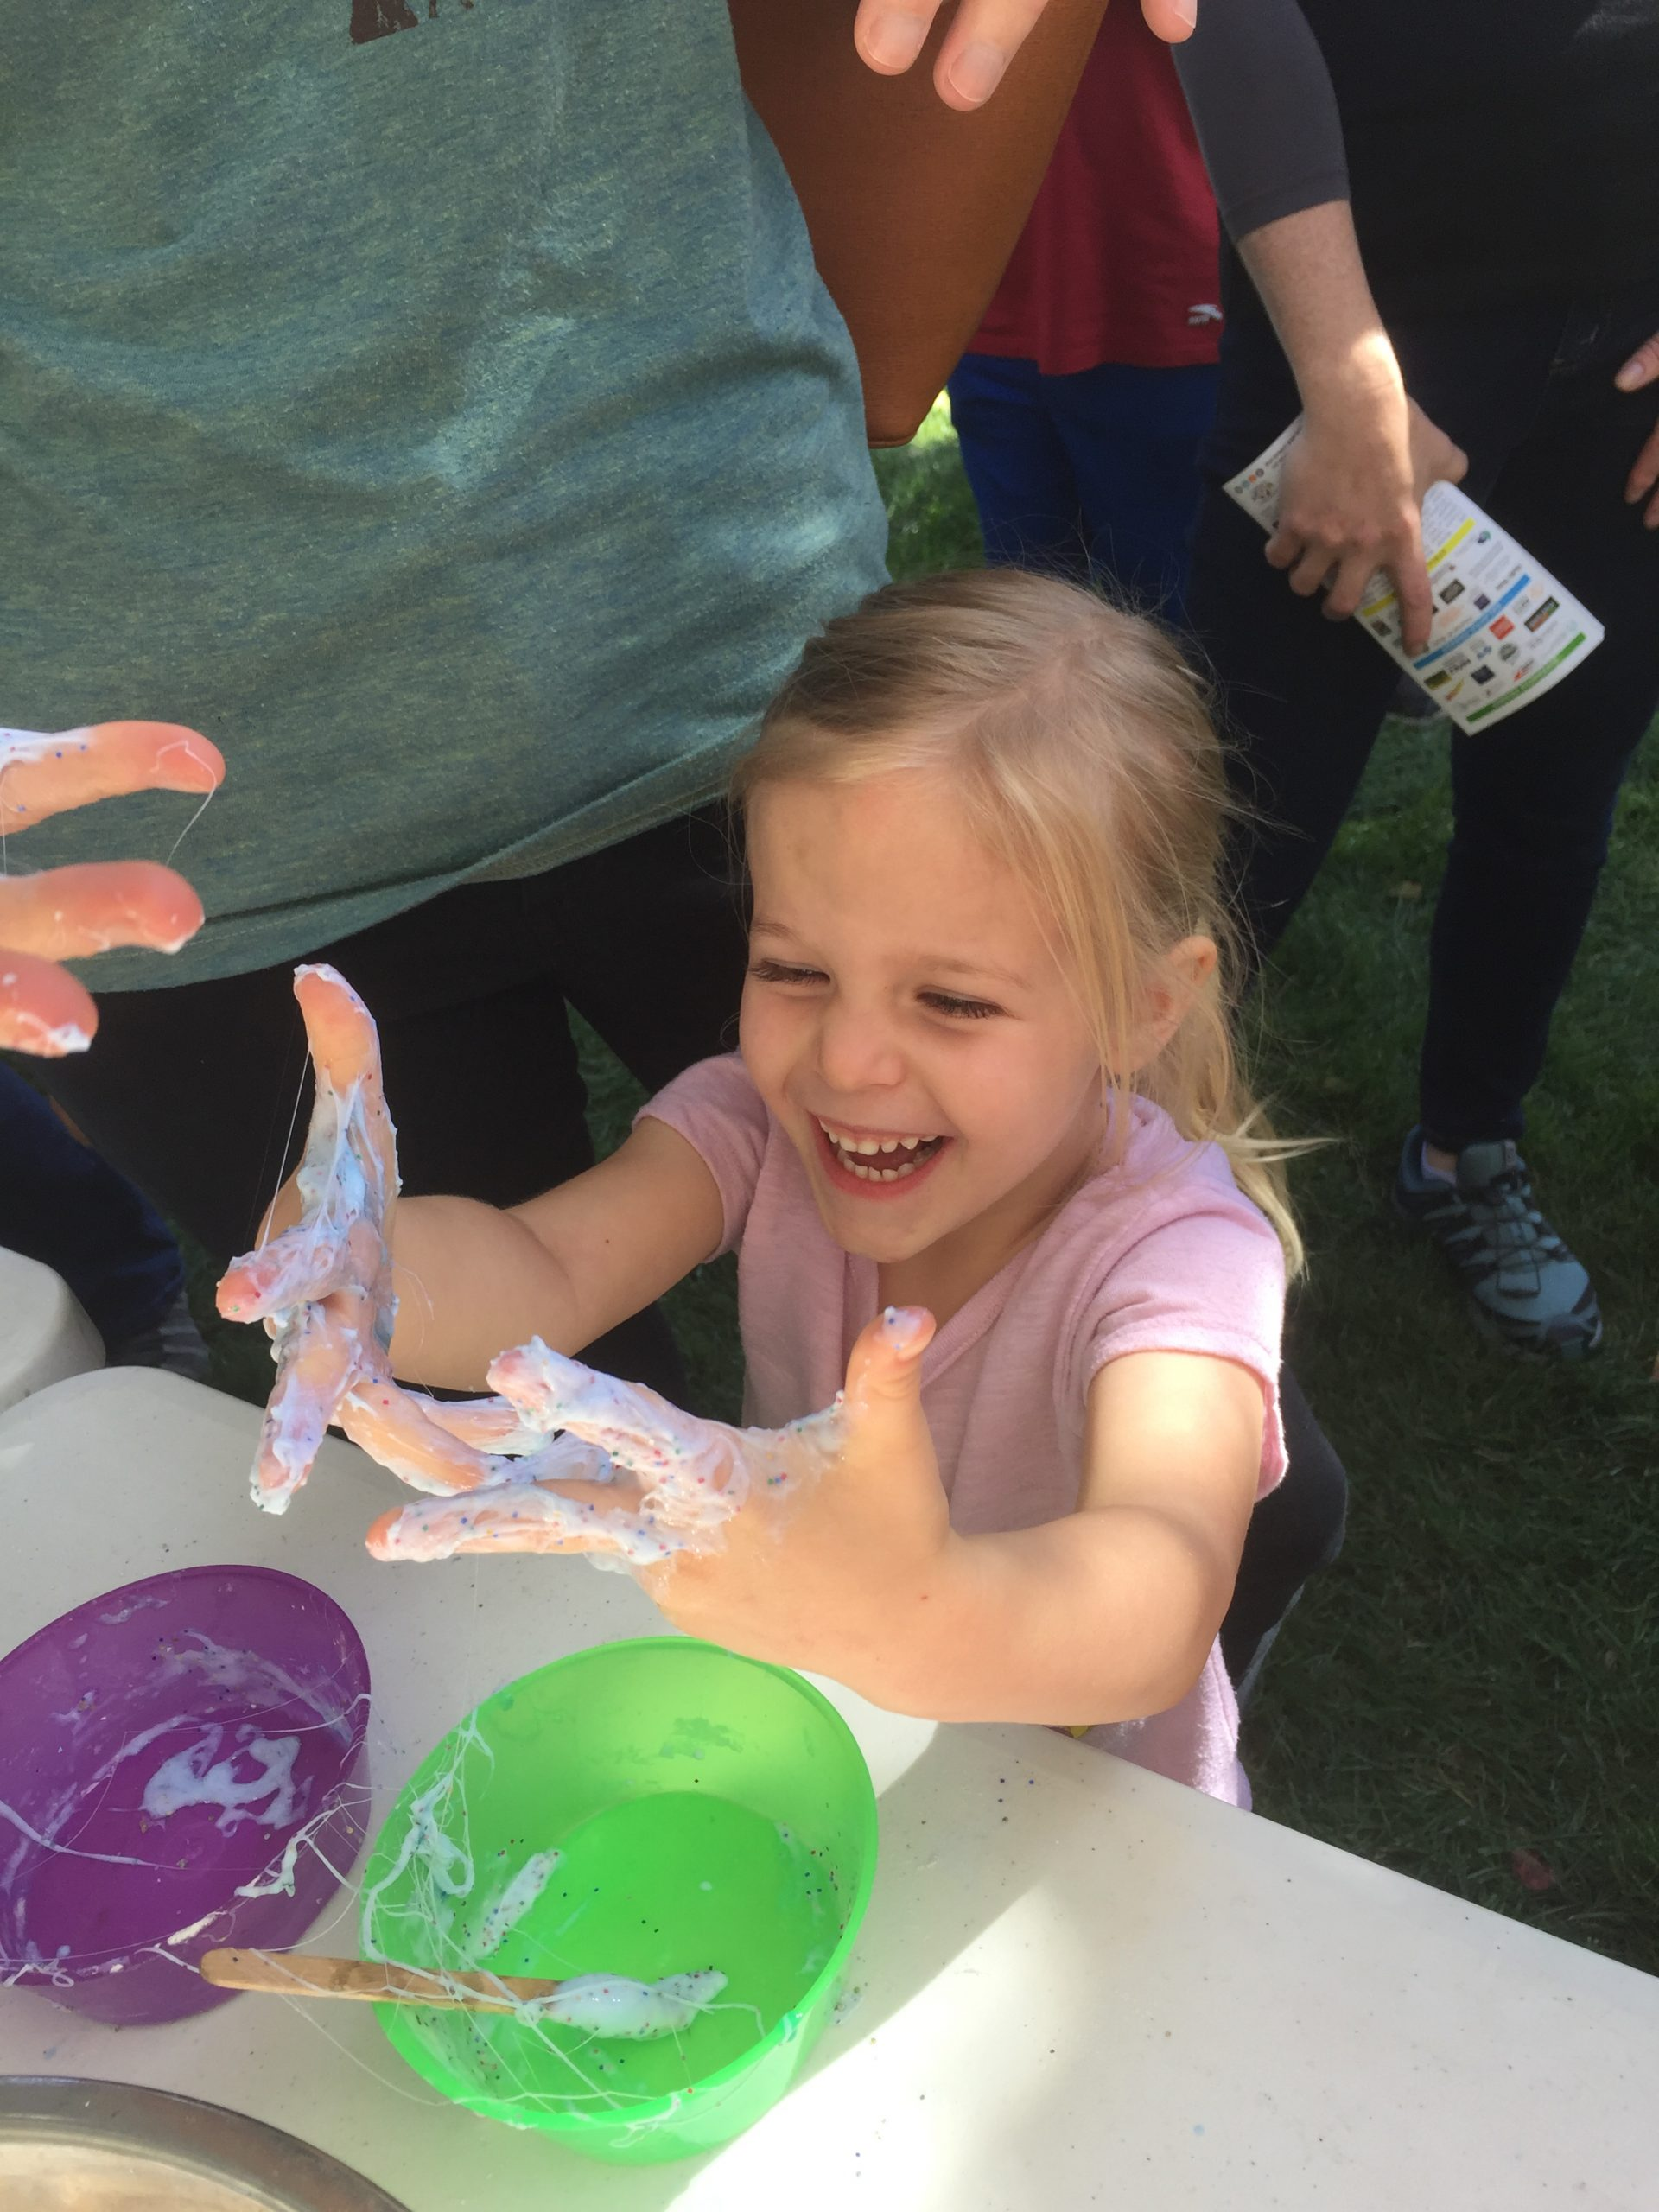 Slime Making at Flagstaff Festival of Science